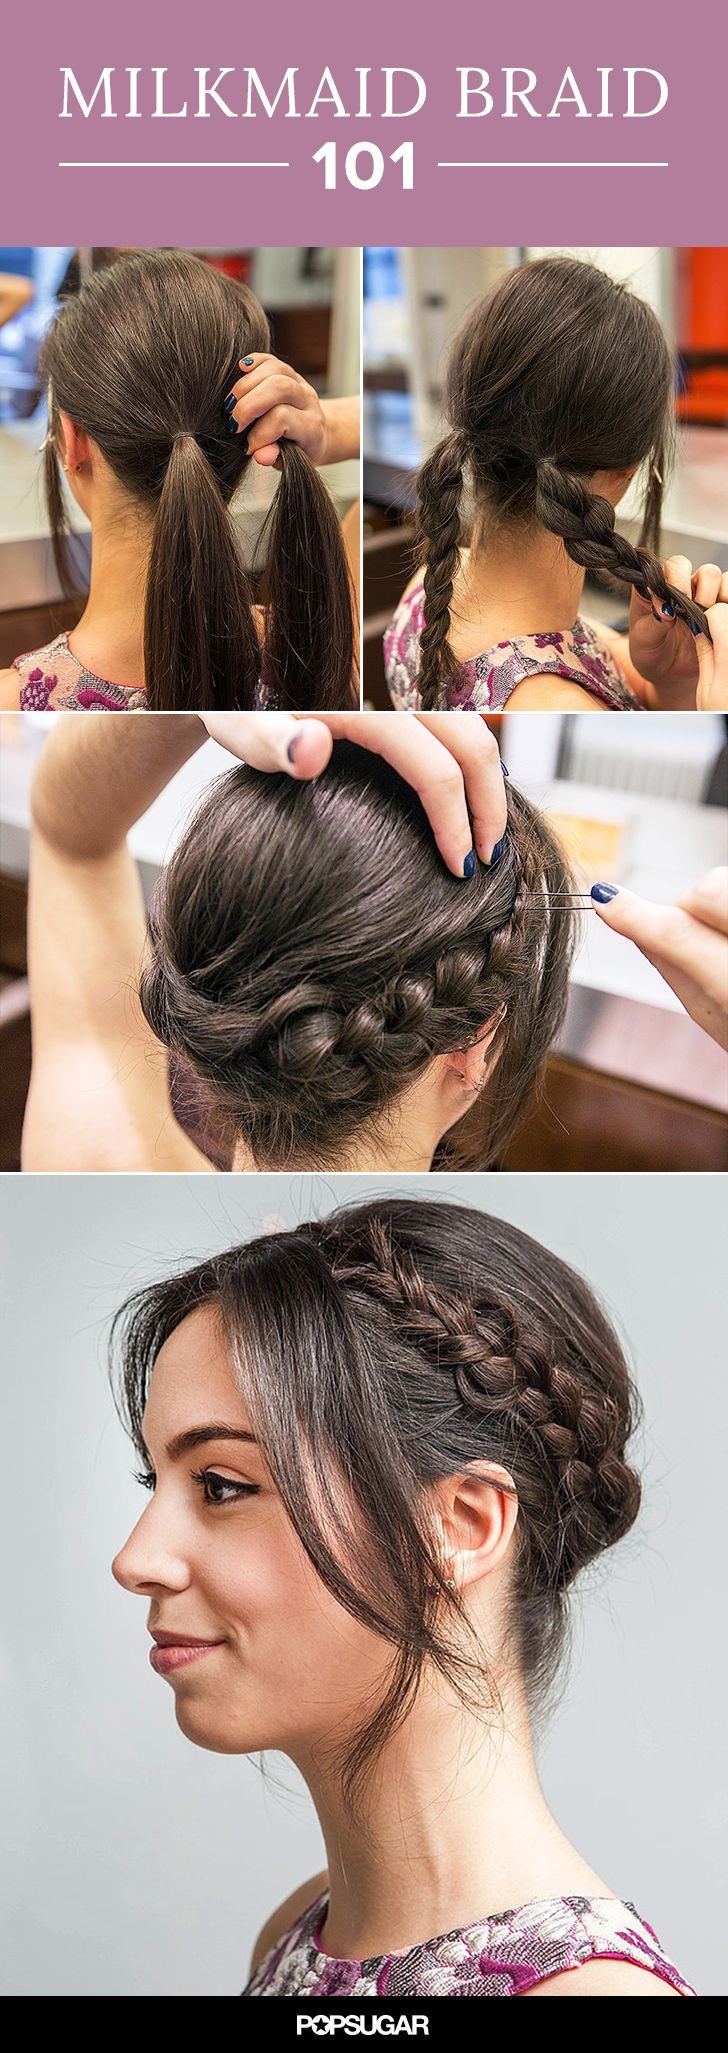 If you can create a simple braid, you can do this!